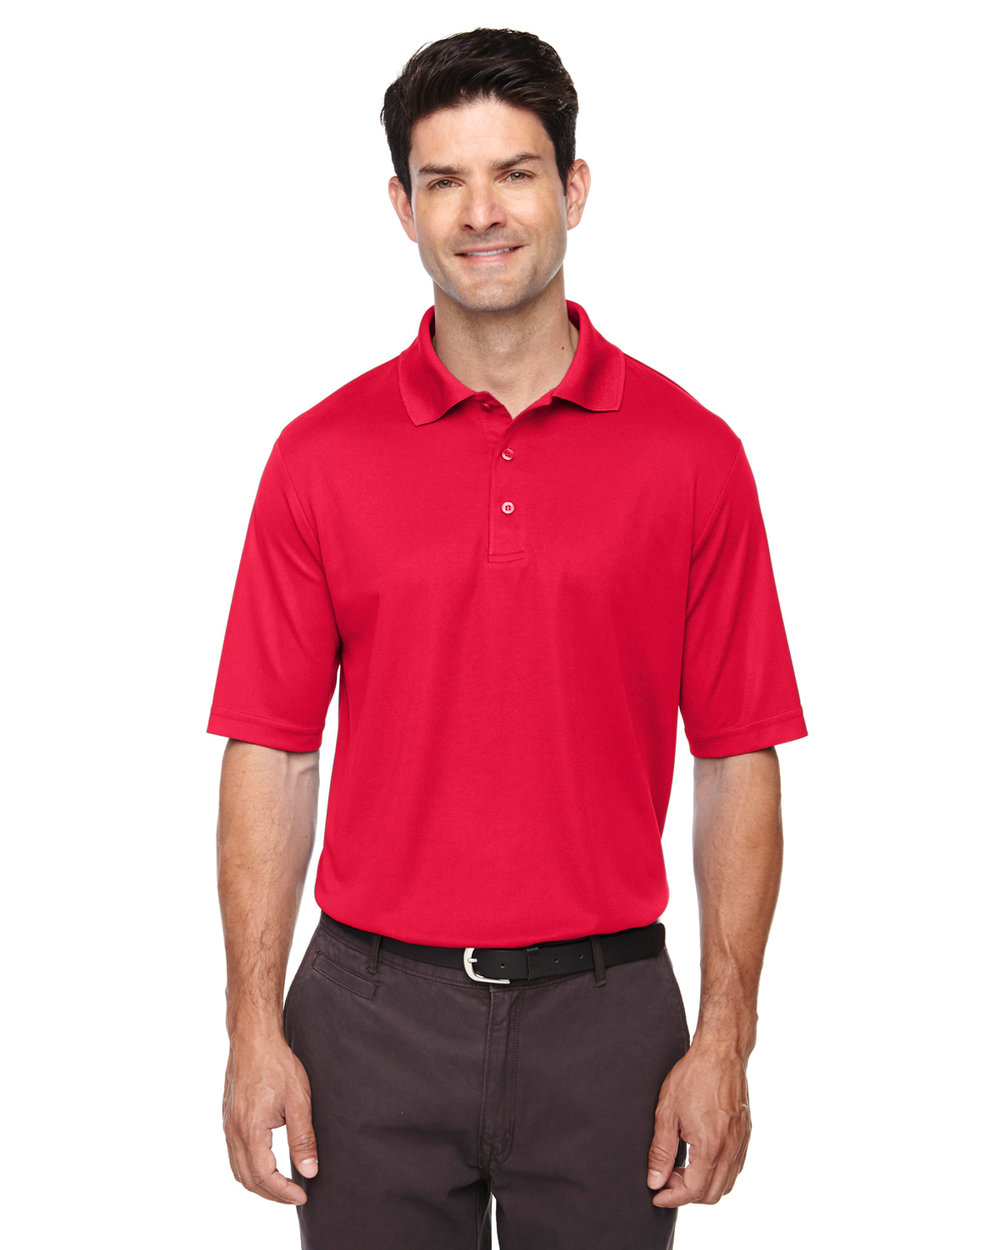 #88181 Men's Core 365 Polo.  $19.00